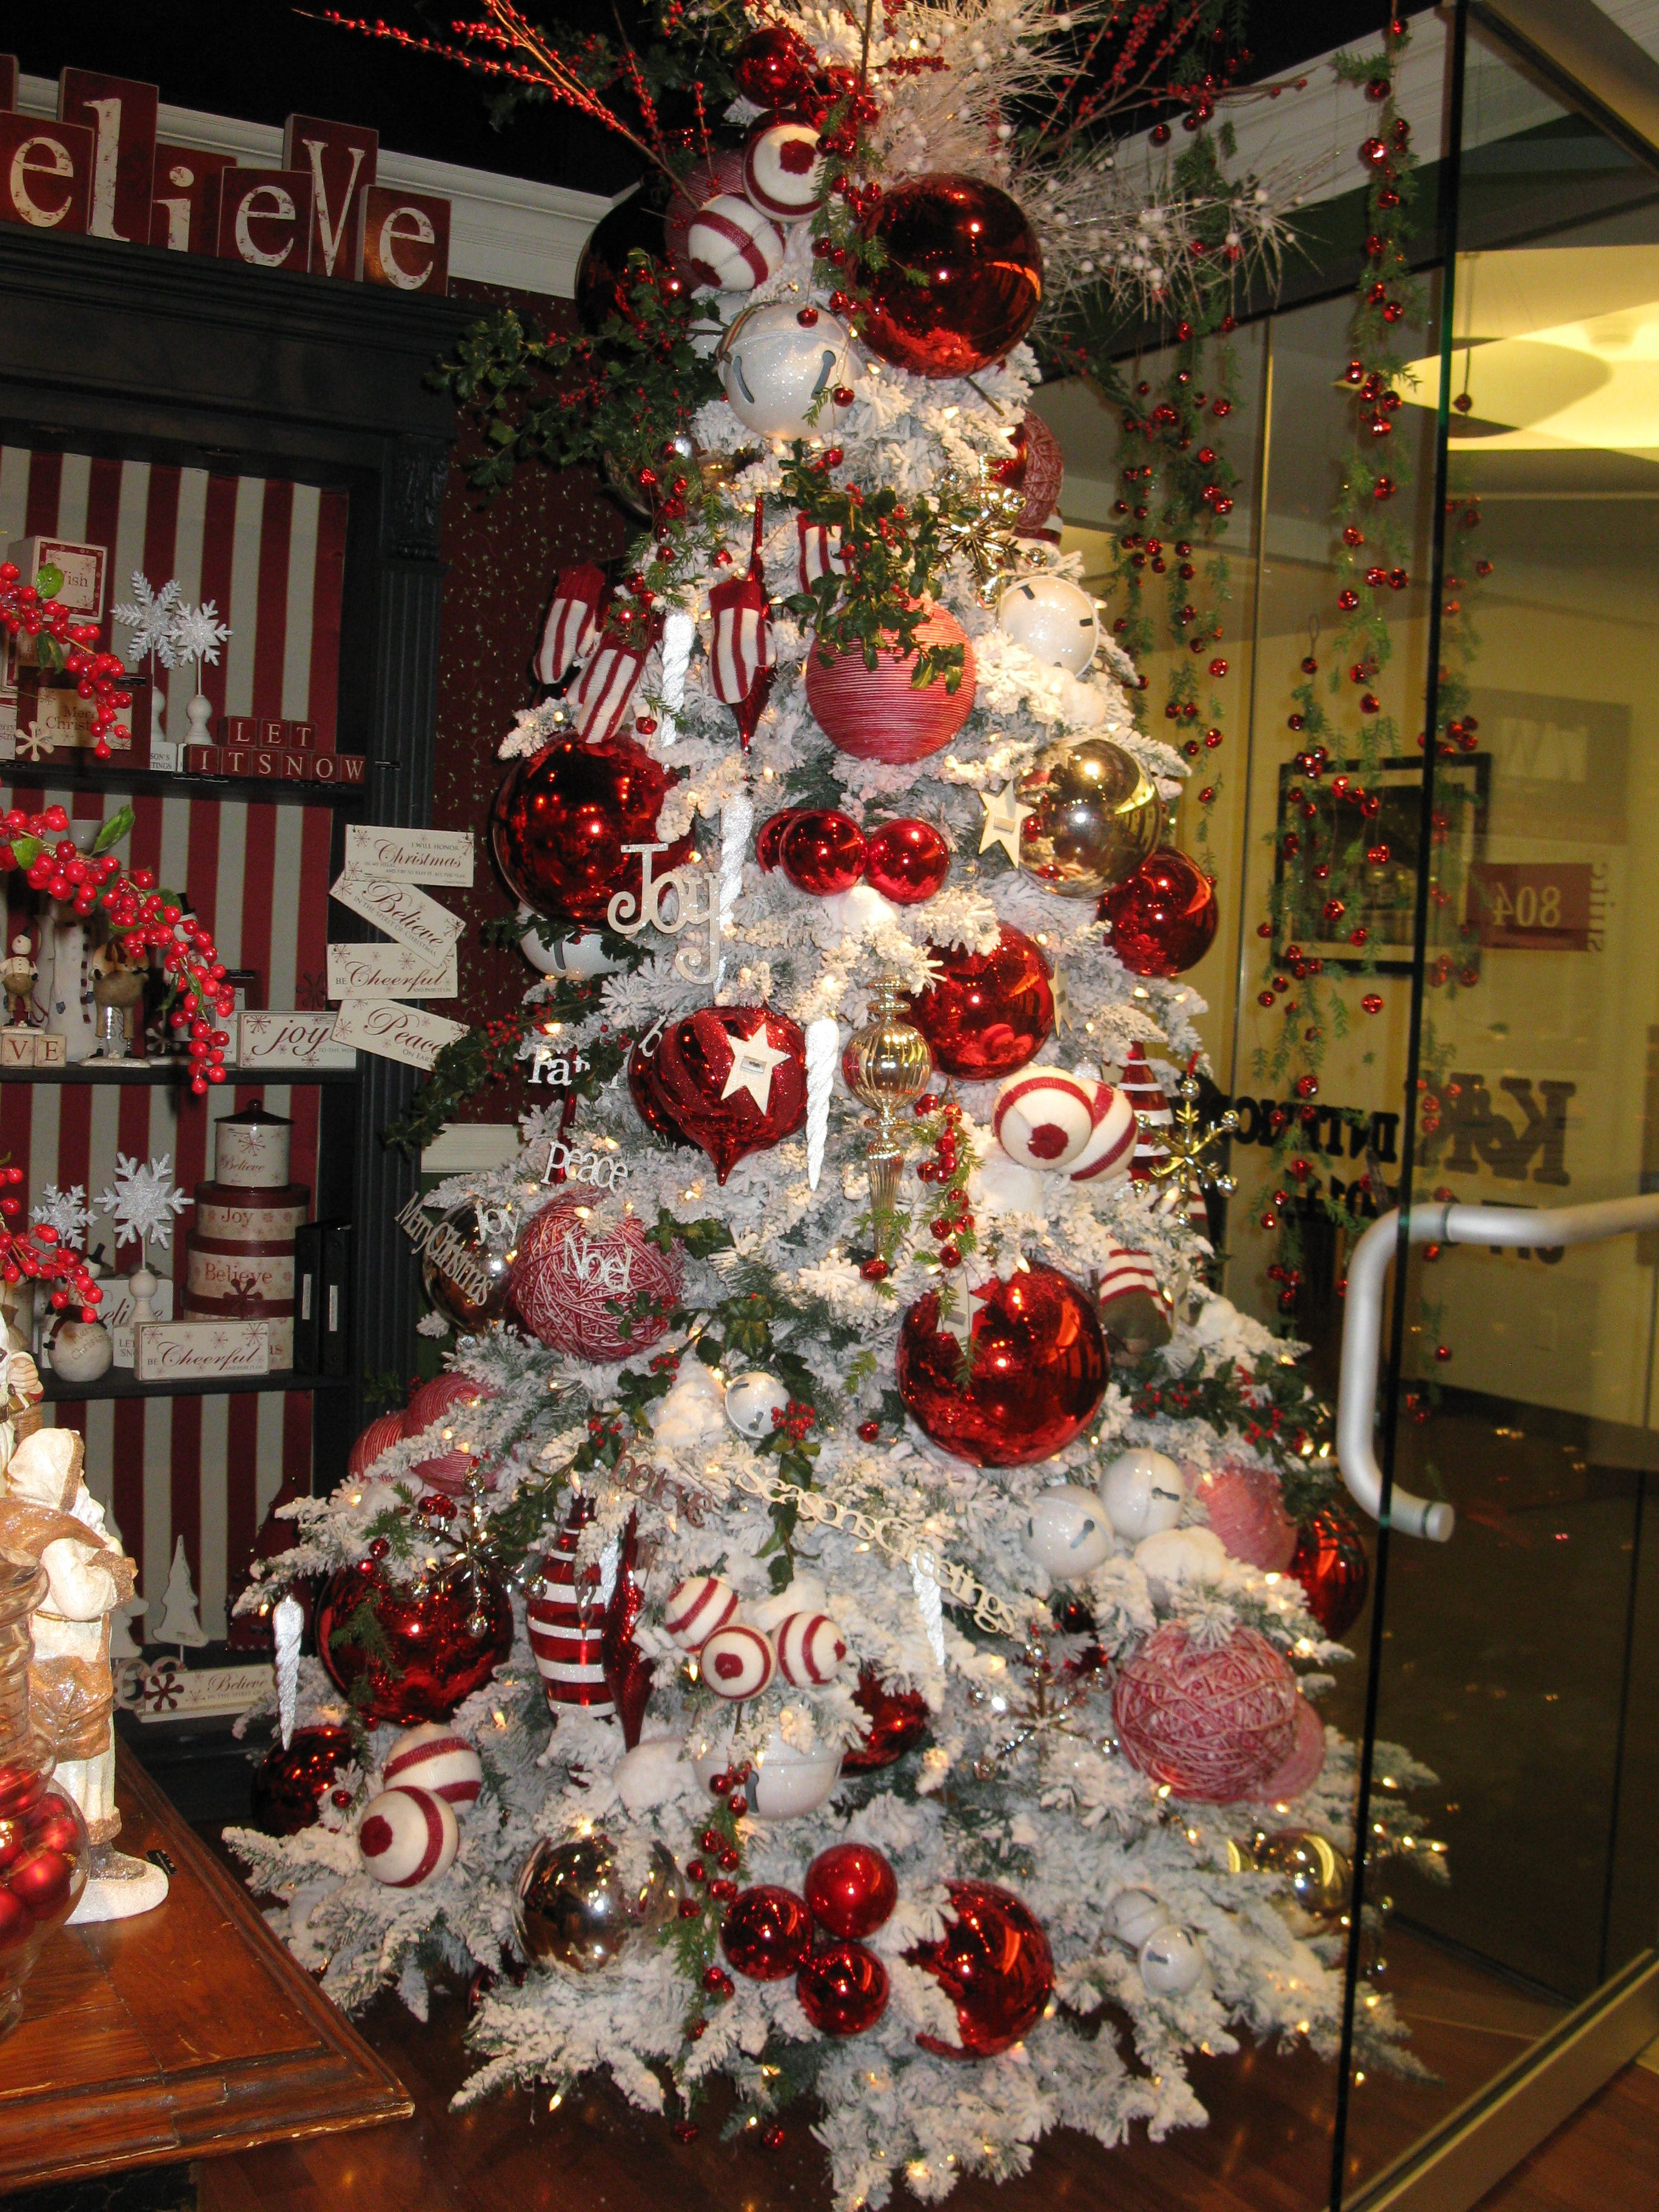 Flocked Christmas tree with oversized ornaments.